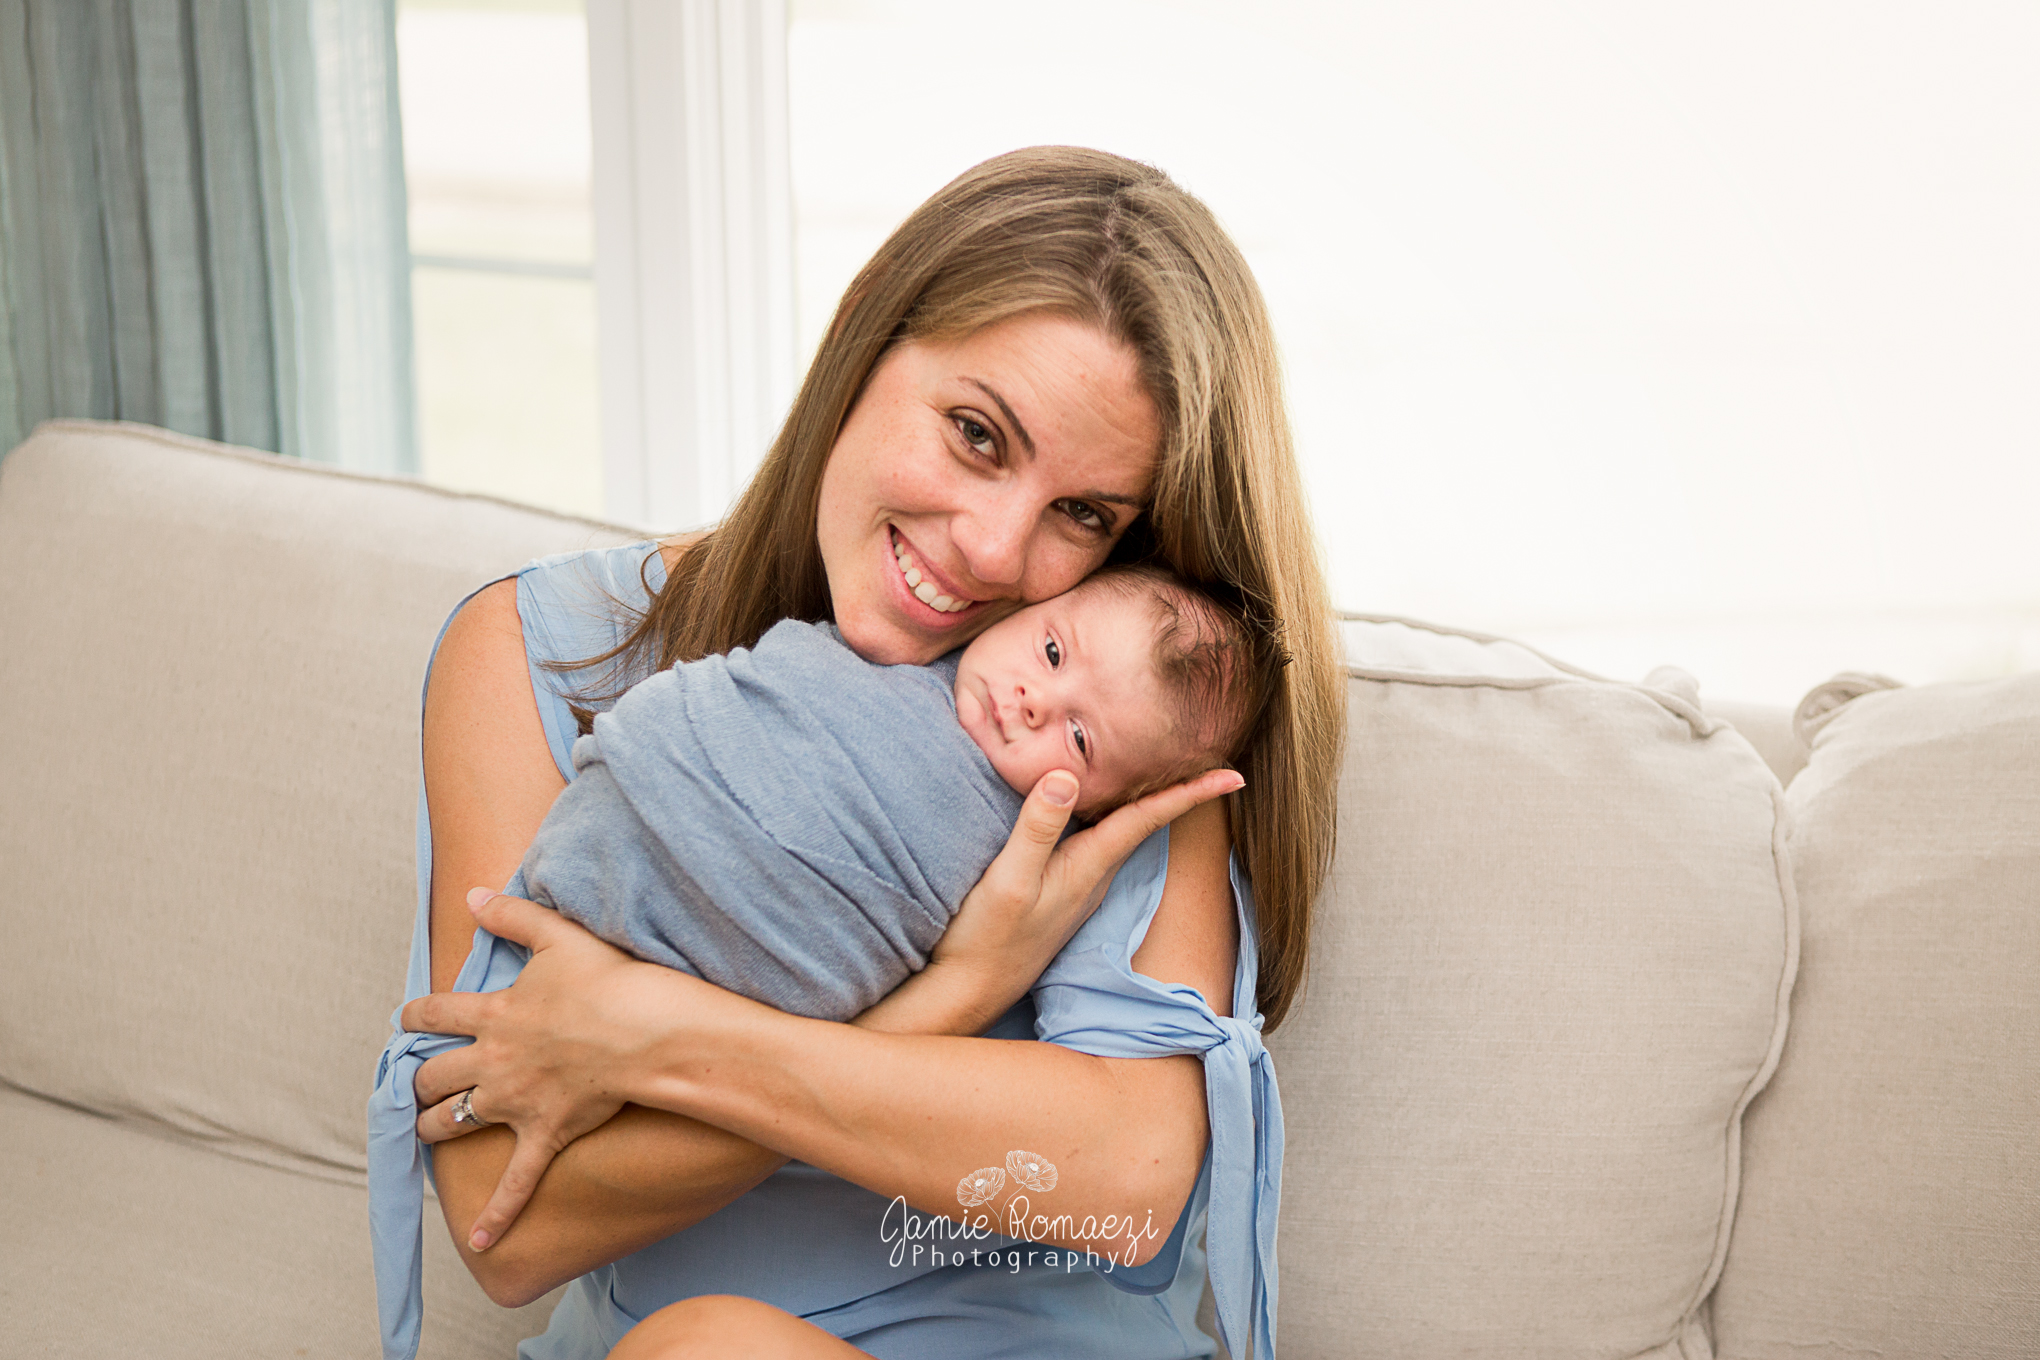 Mom sitting on couch posing with newborn in arms.